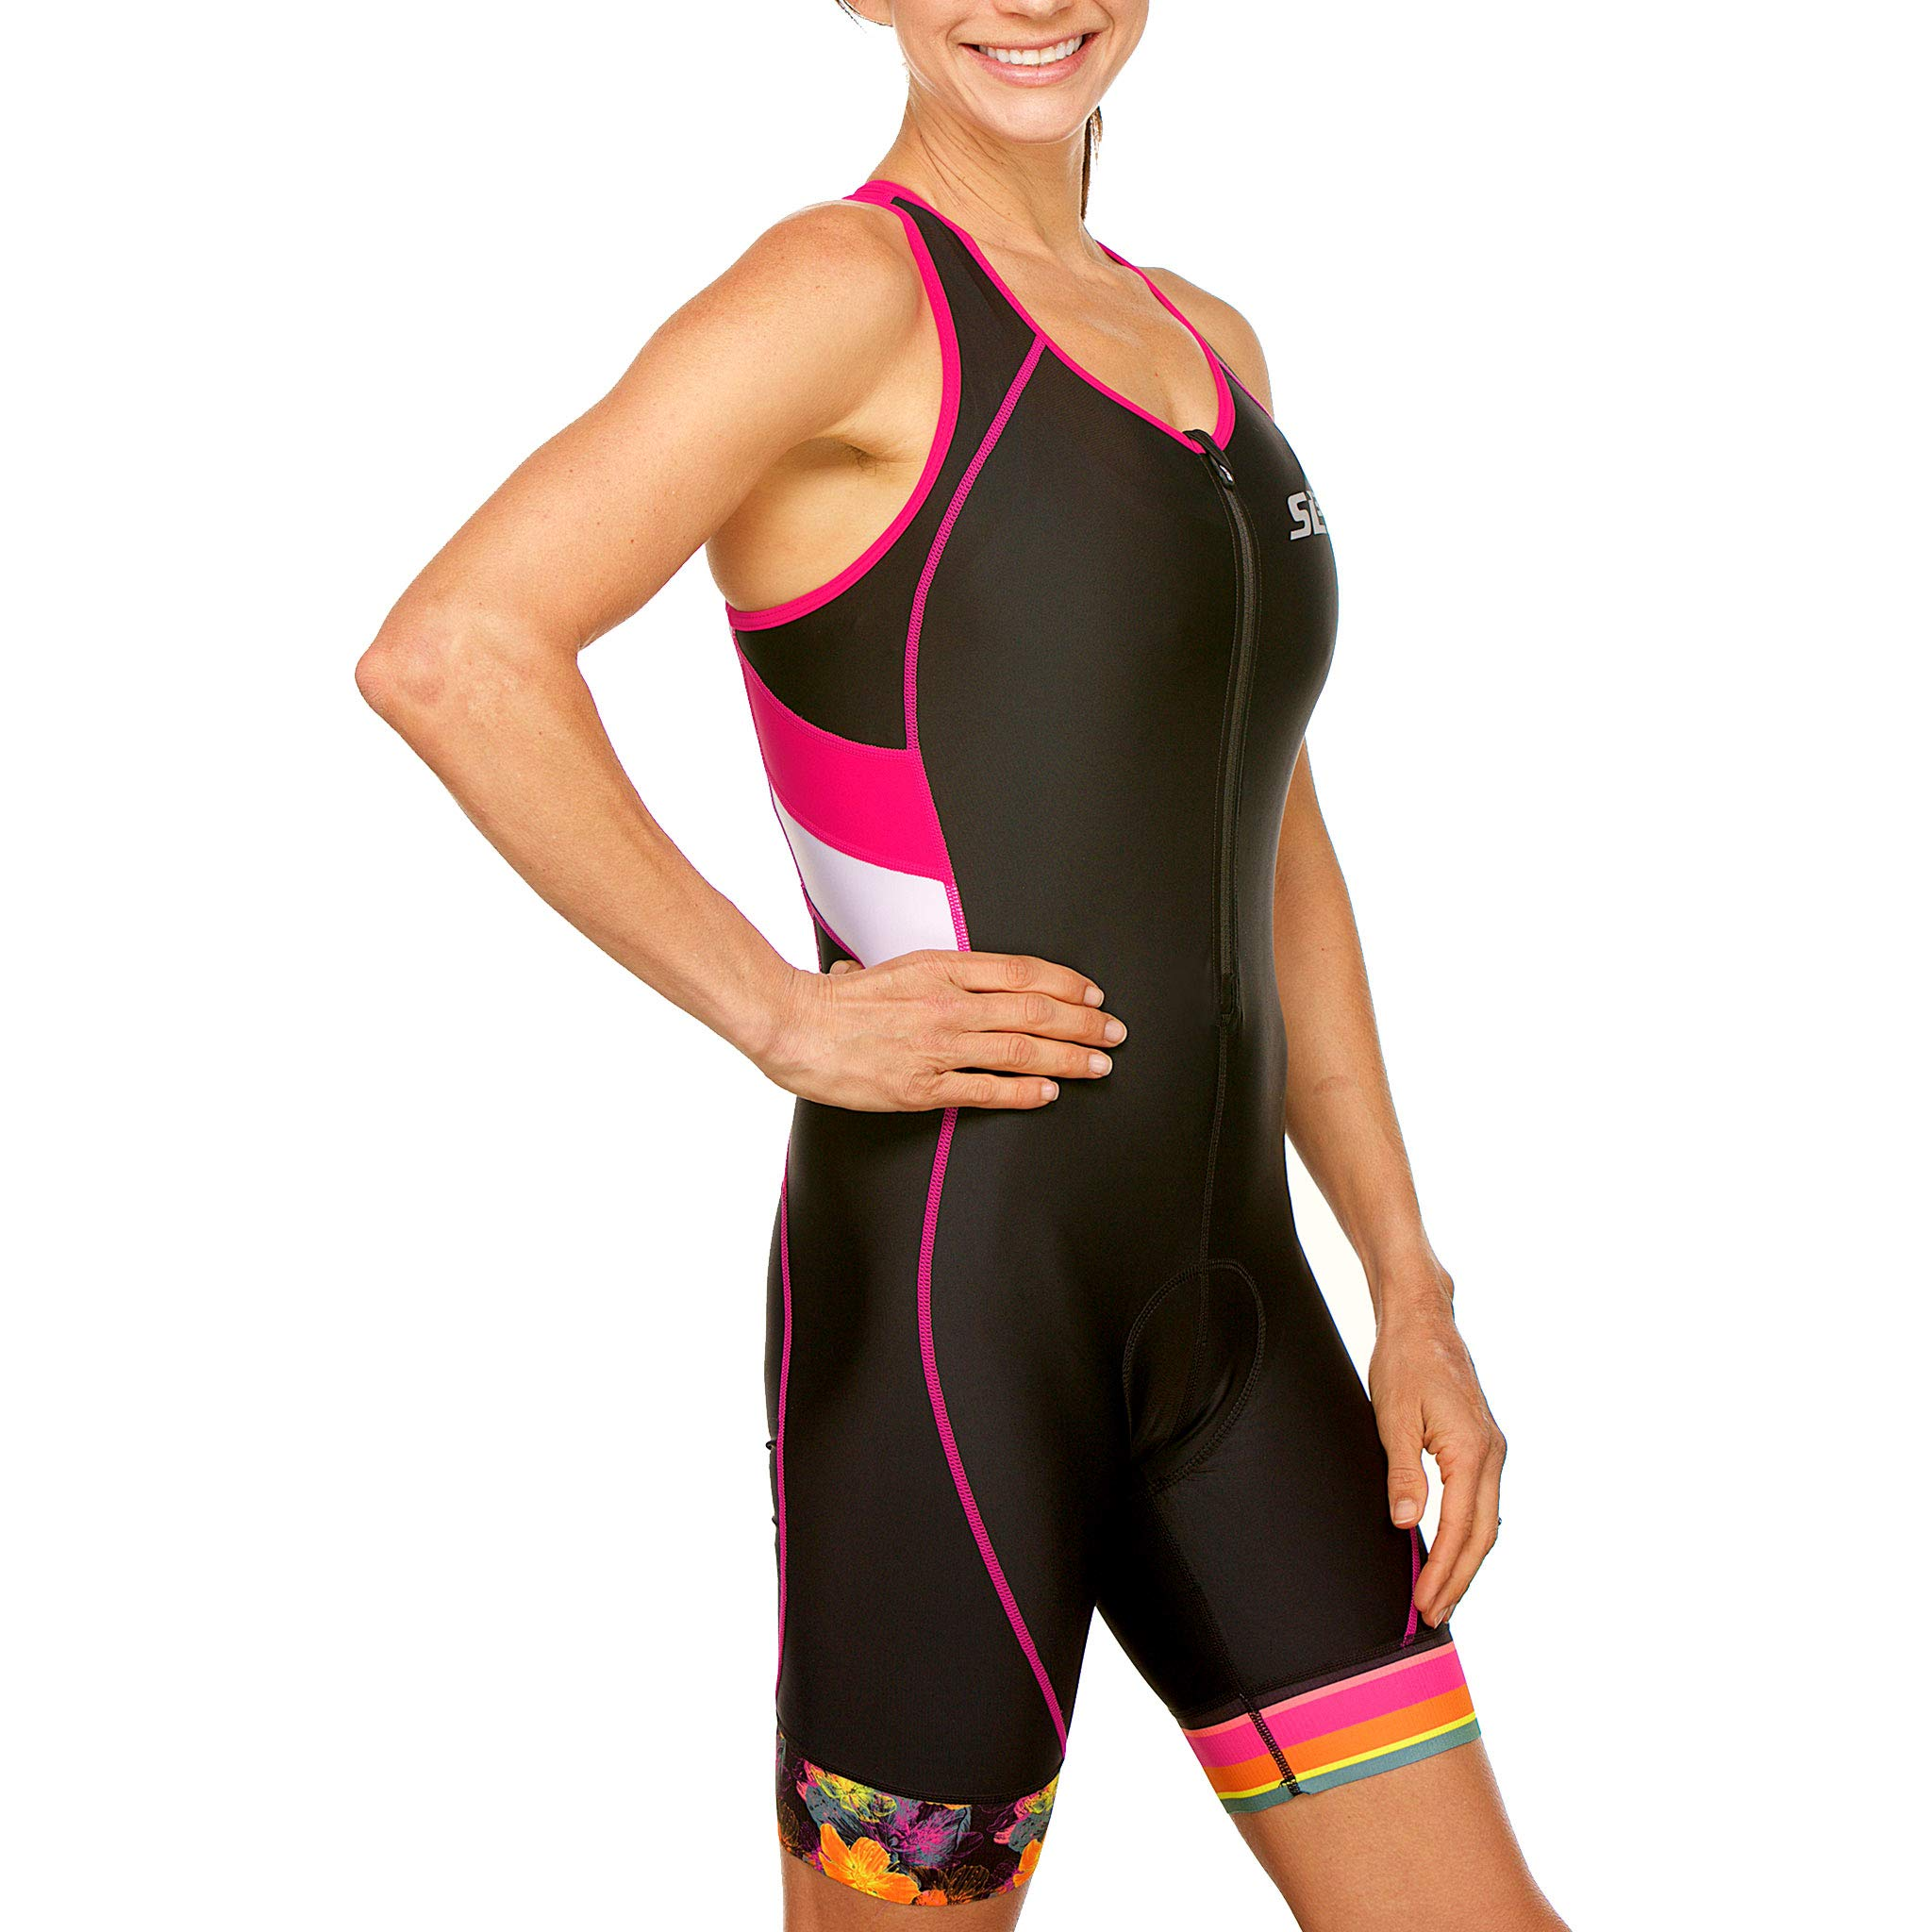 SLS3 Women`s Triathlon Suit FX | Womens Trisuits | 1 Pocket Triathlon Gear Suits Women | Anti-Friction Seams Womens Tri Suit | German Designed (Black/Bright Rose, M) by SLS3 (Image #4)